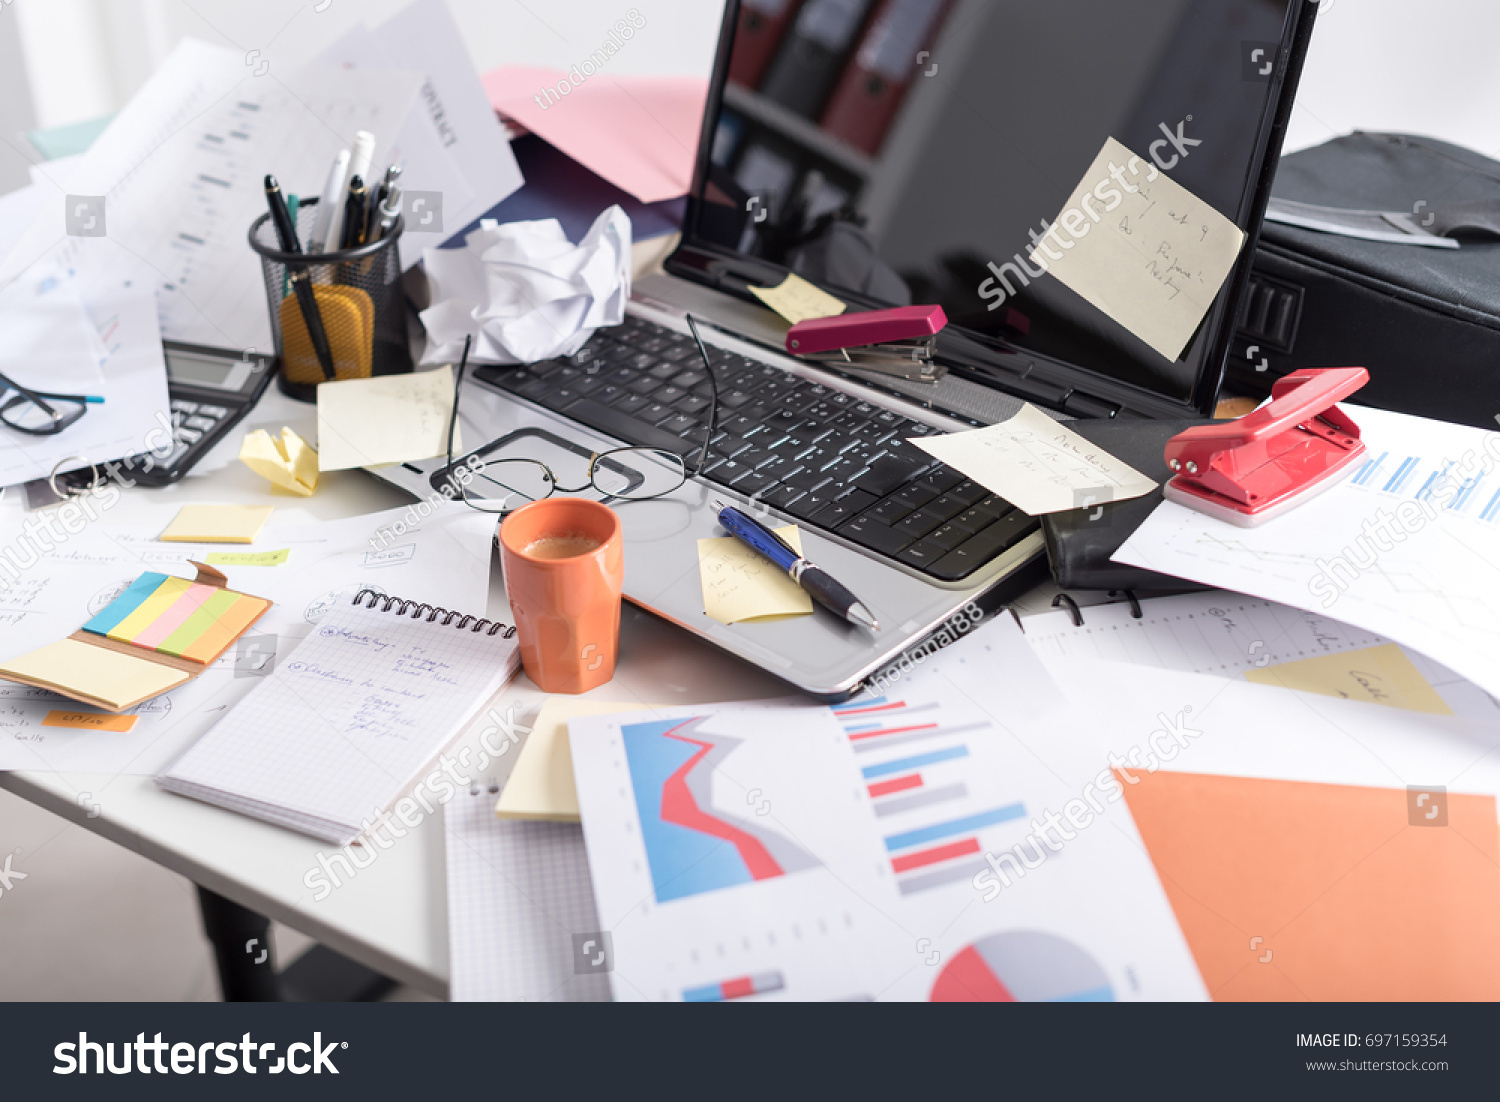 Messy and cluttered office desk #697159354